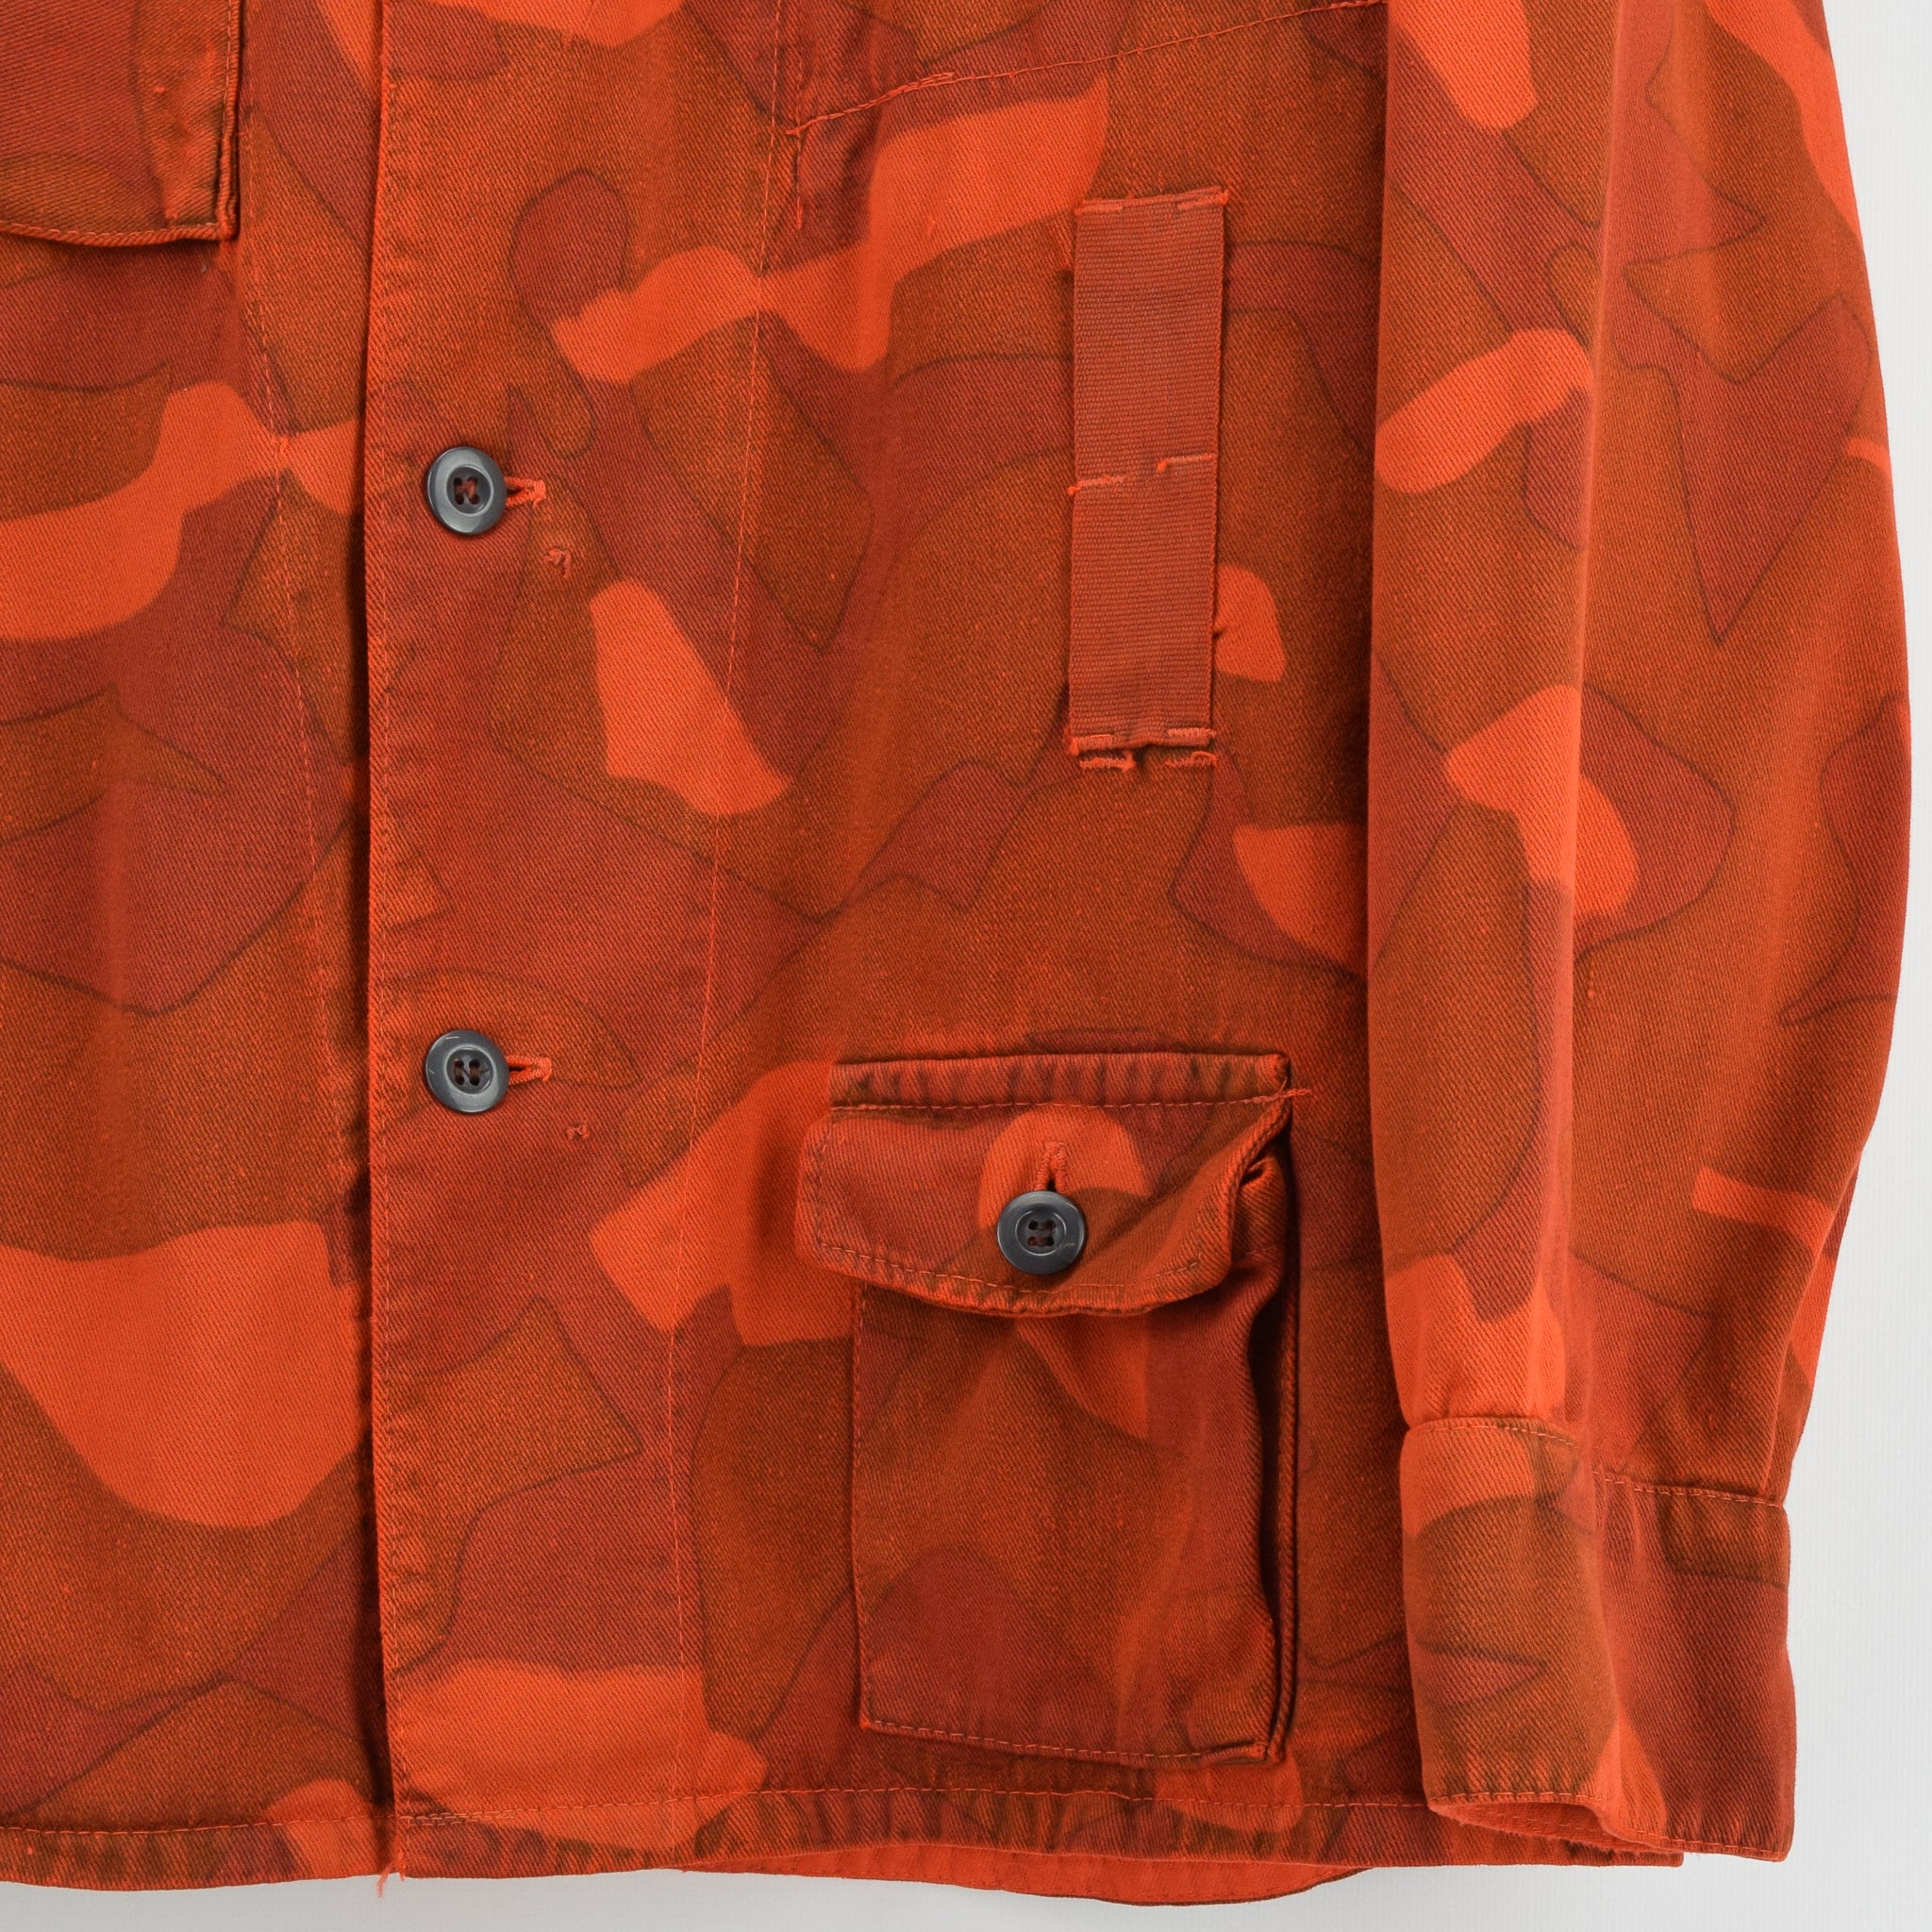 Vintage 60s Military Finnish Army Orange Overdyed Camo Mountain Field Jacket M front hem